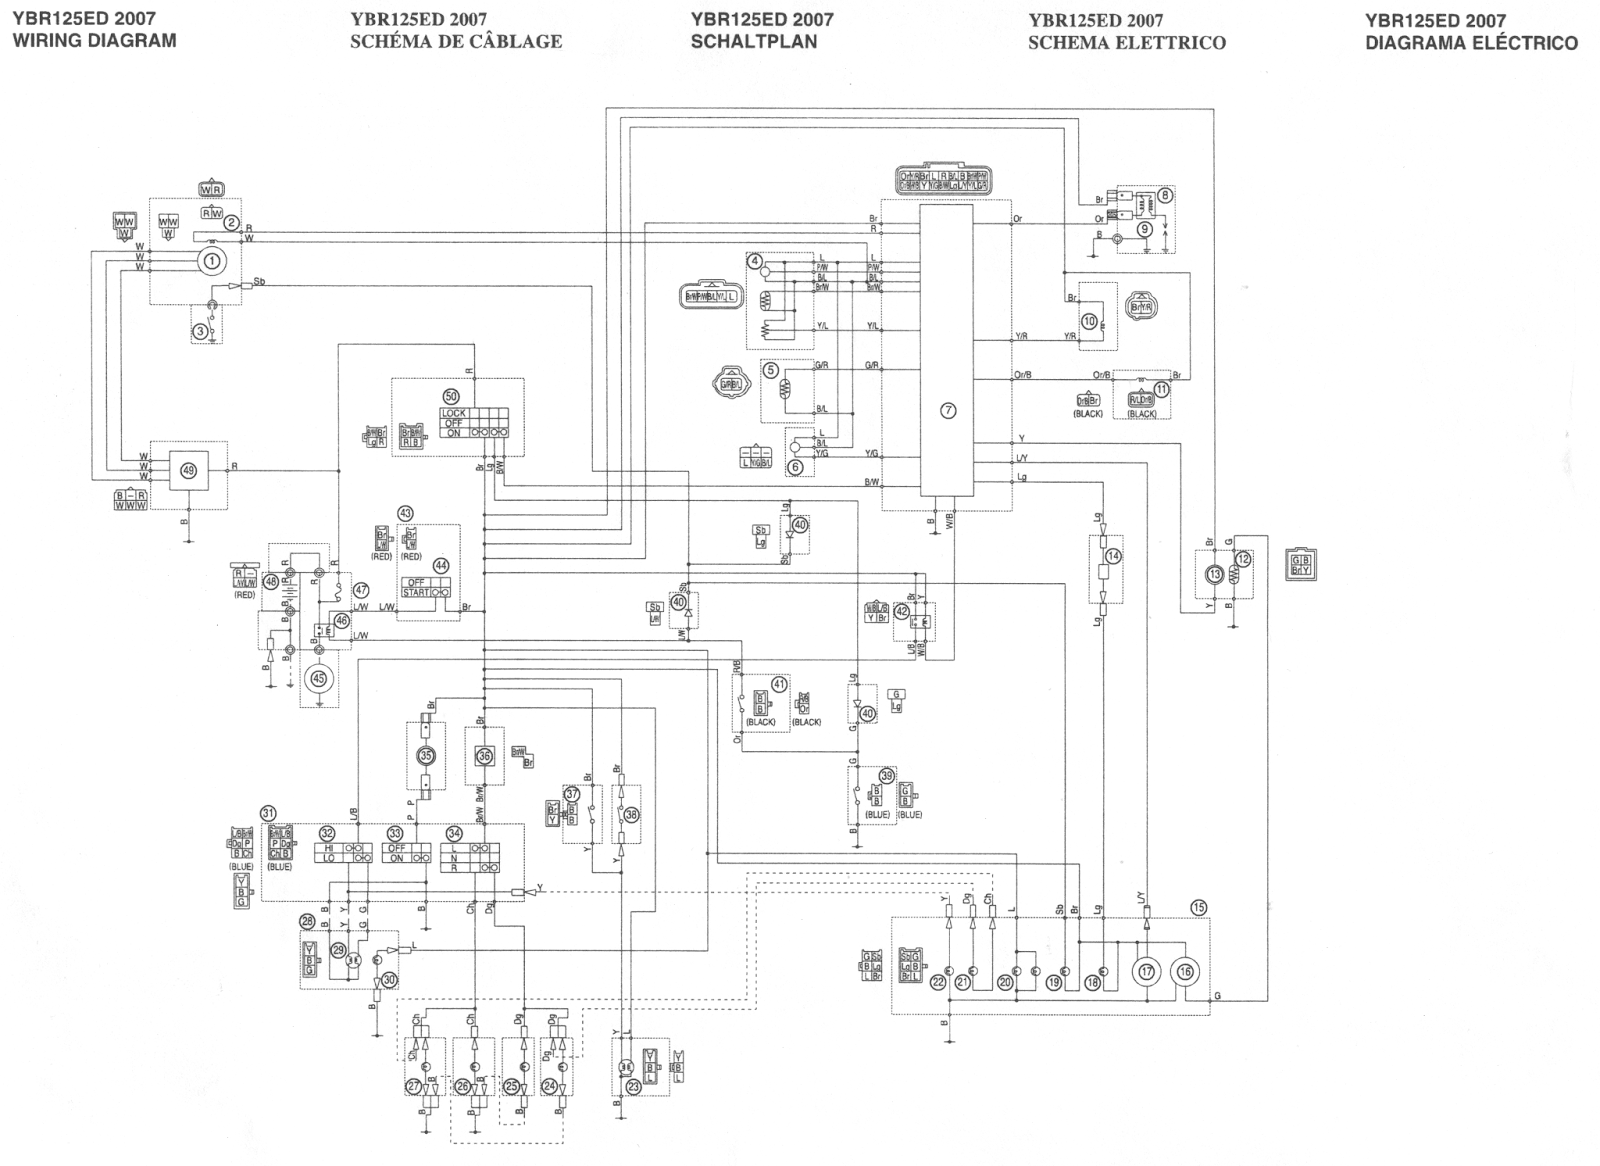 06 yamaha grizzly 125 wiring diagram 1999 yamaha grizzly 600 wiring diagram #8